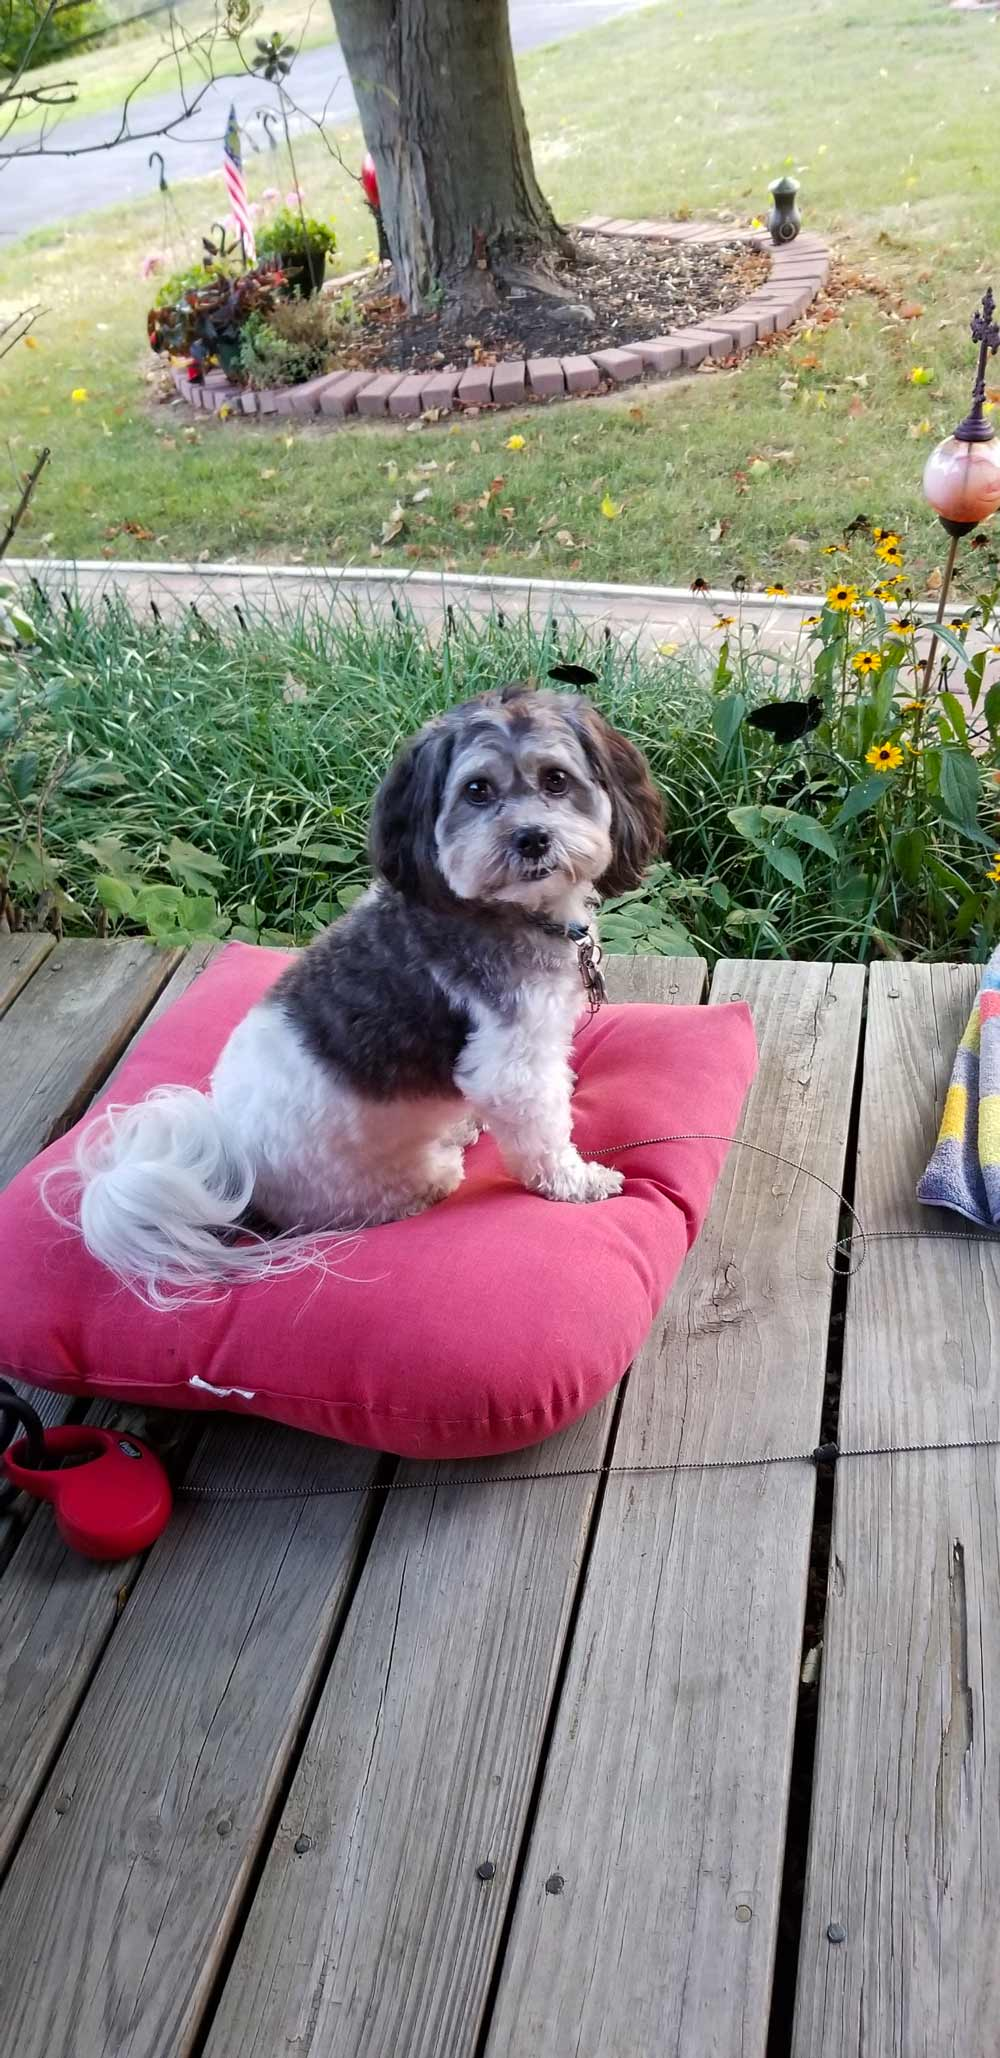 Meet Cooper. He's a King Charles and Shih Tzu blend, and Mom says he's a true joy: he really does think he's King! He looks happy sitting on his pillow outside on a crisp fall day.